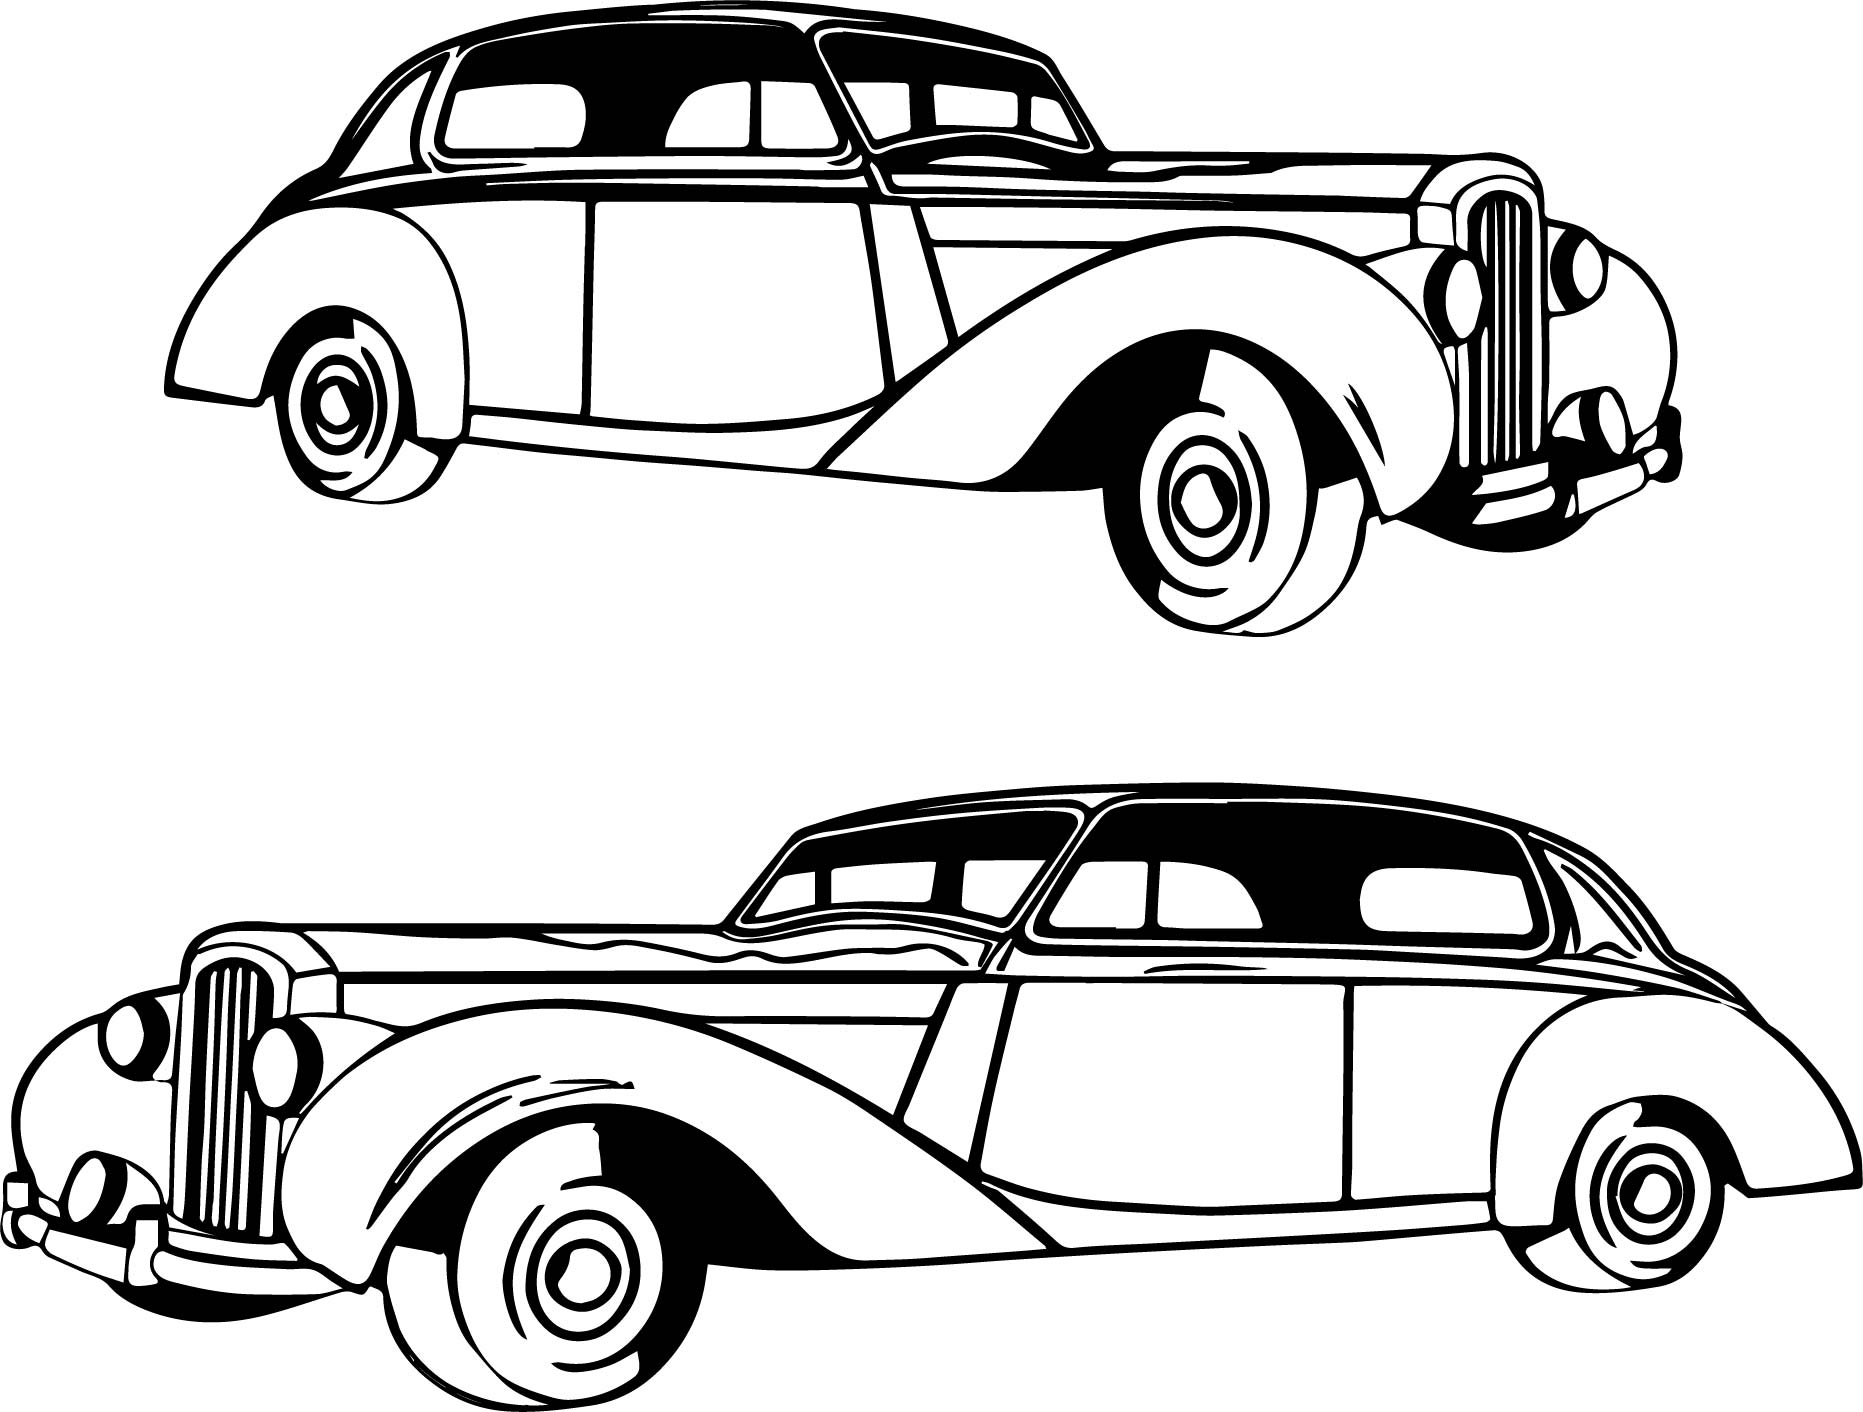 coloring pages antique cars | Antique Car Coloring Pages